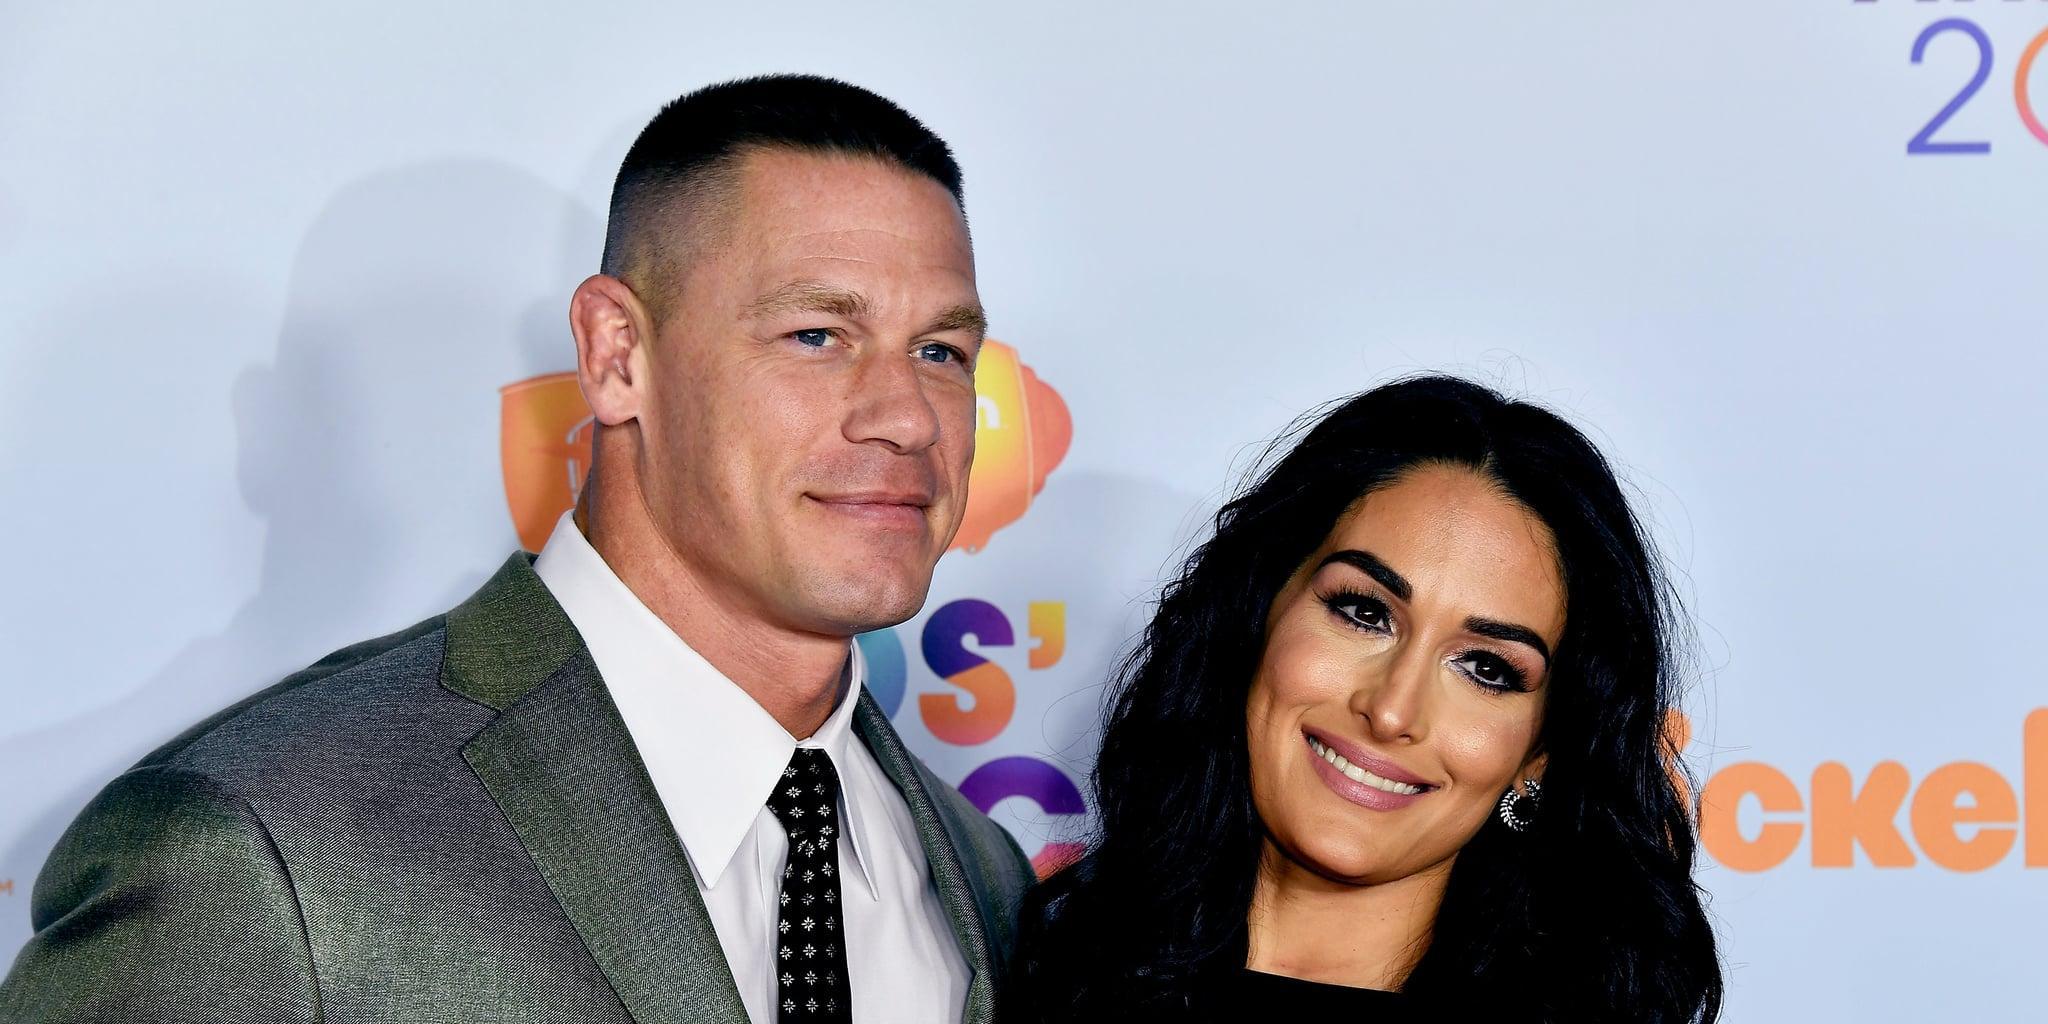 Nikki Bella Looking Forward To Finding Love In 2019 - Here's Why She Doesn't Want To Date Another Star Like John Cena!